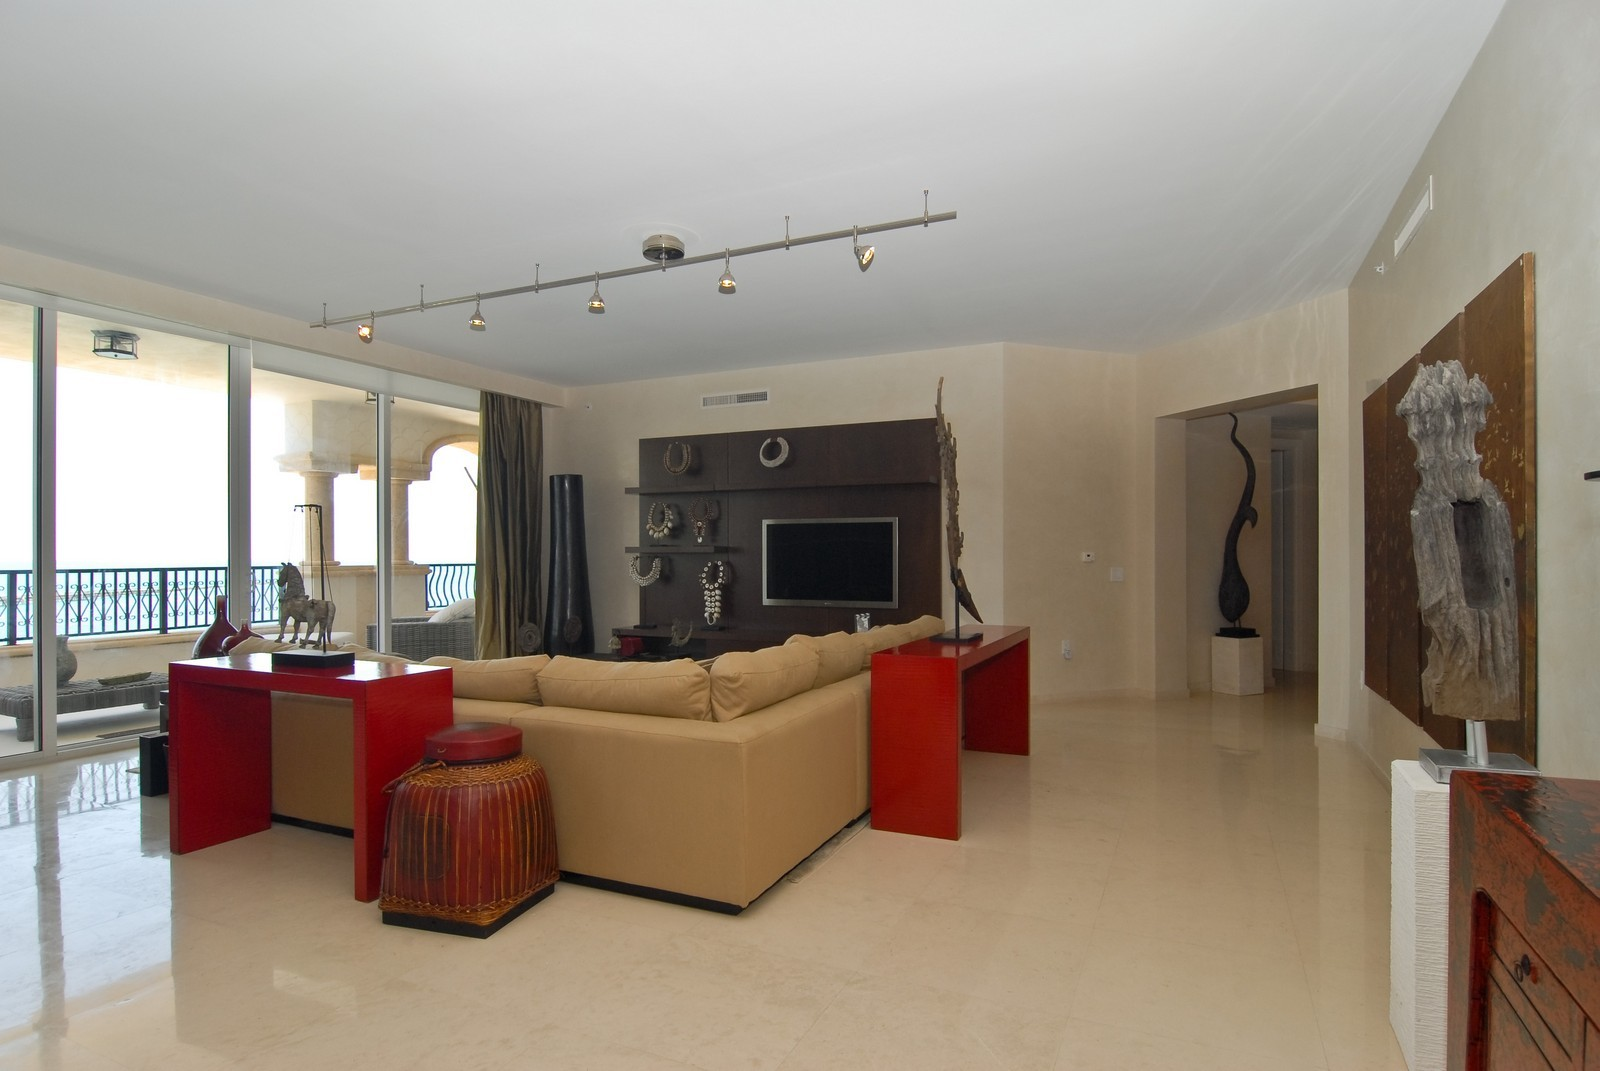 Real Estate Photography - 7161 Fisher Island Drive, Miami Beach, FL, 33109 - Living Room